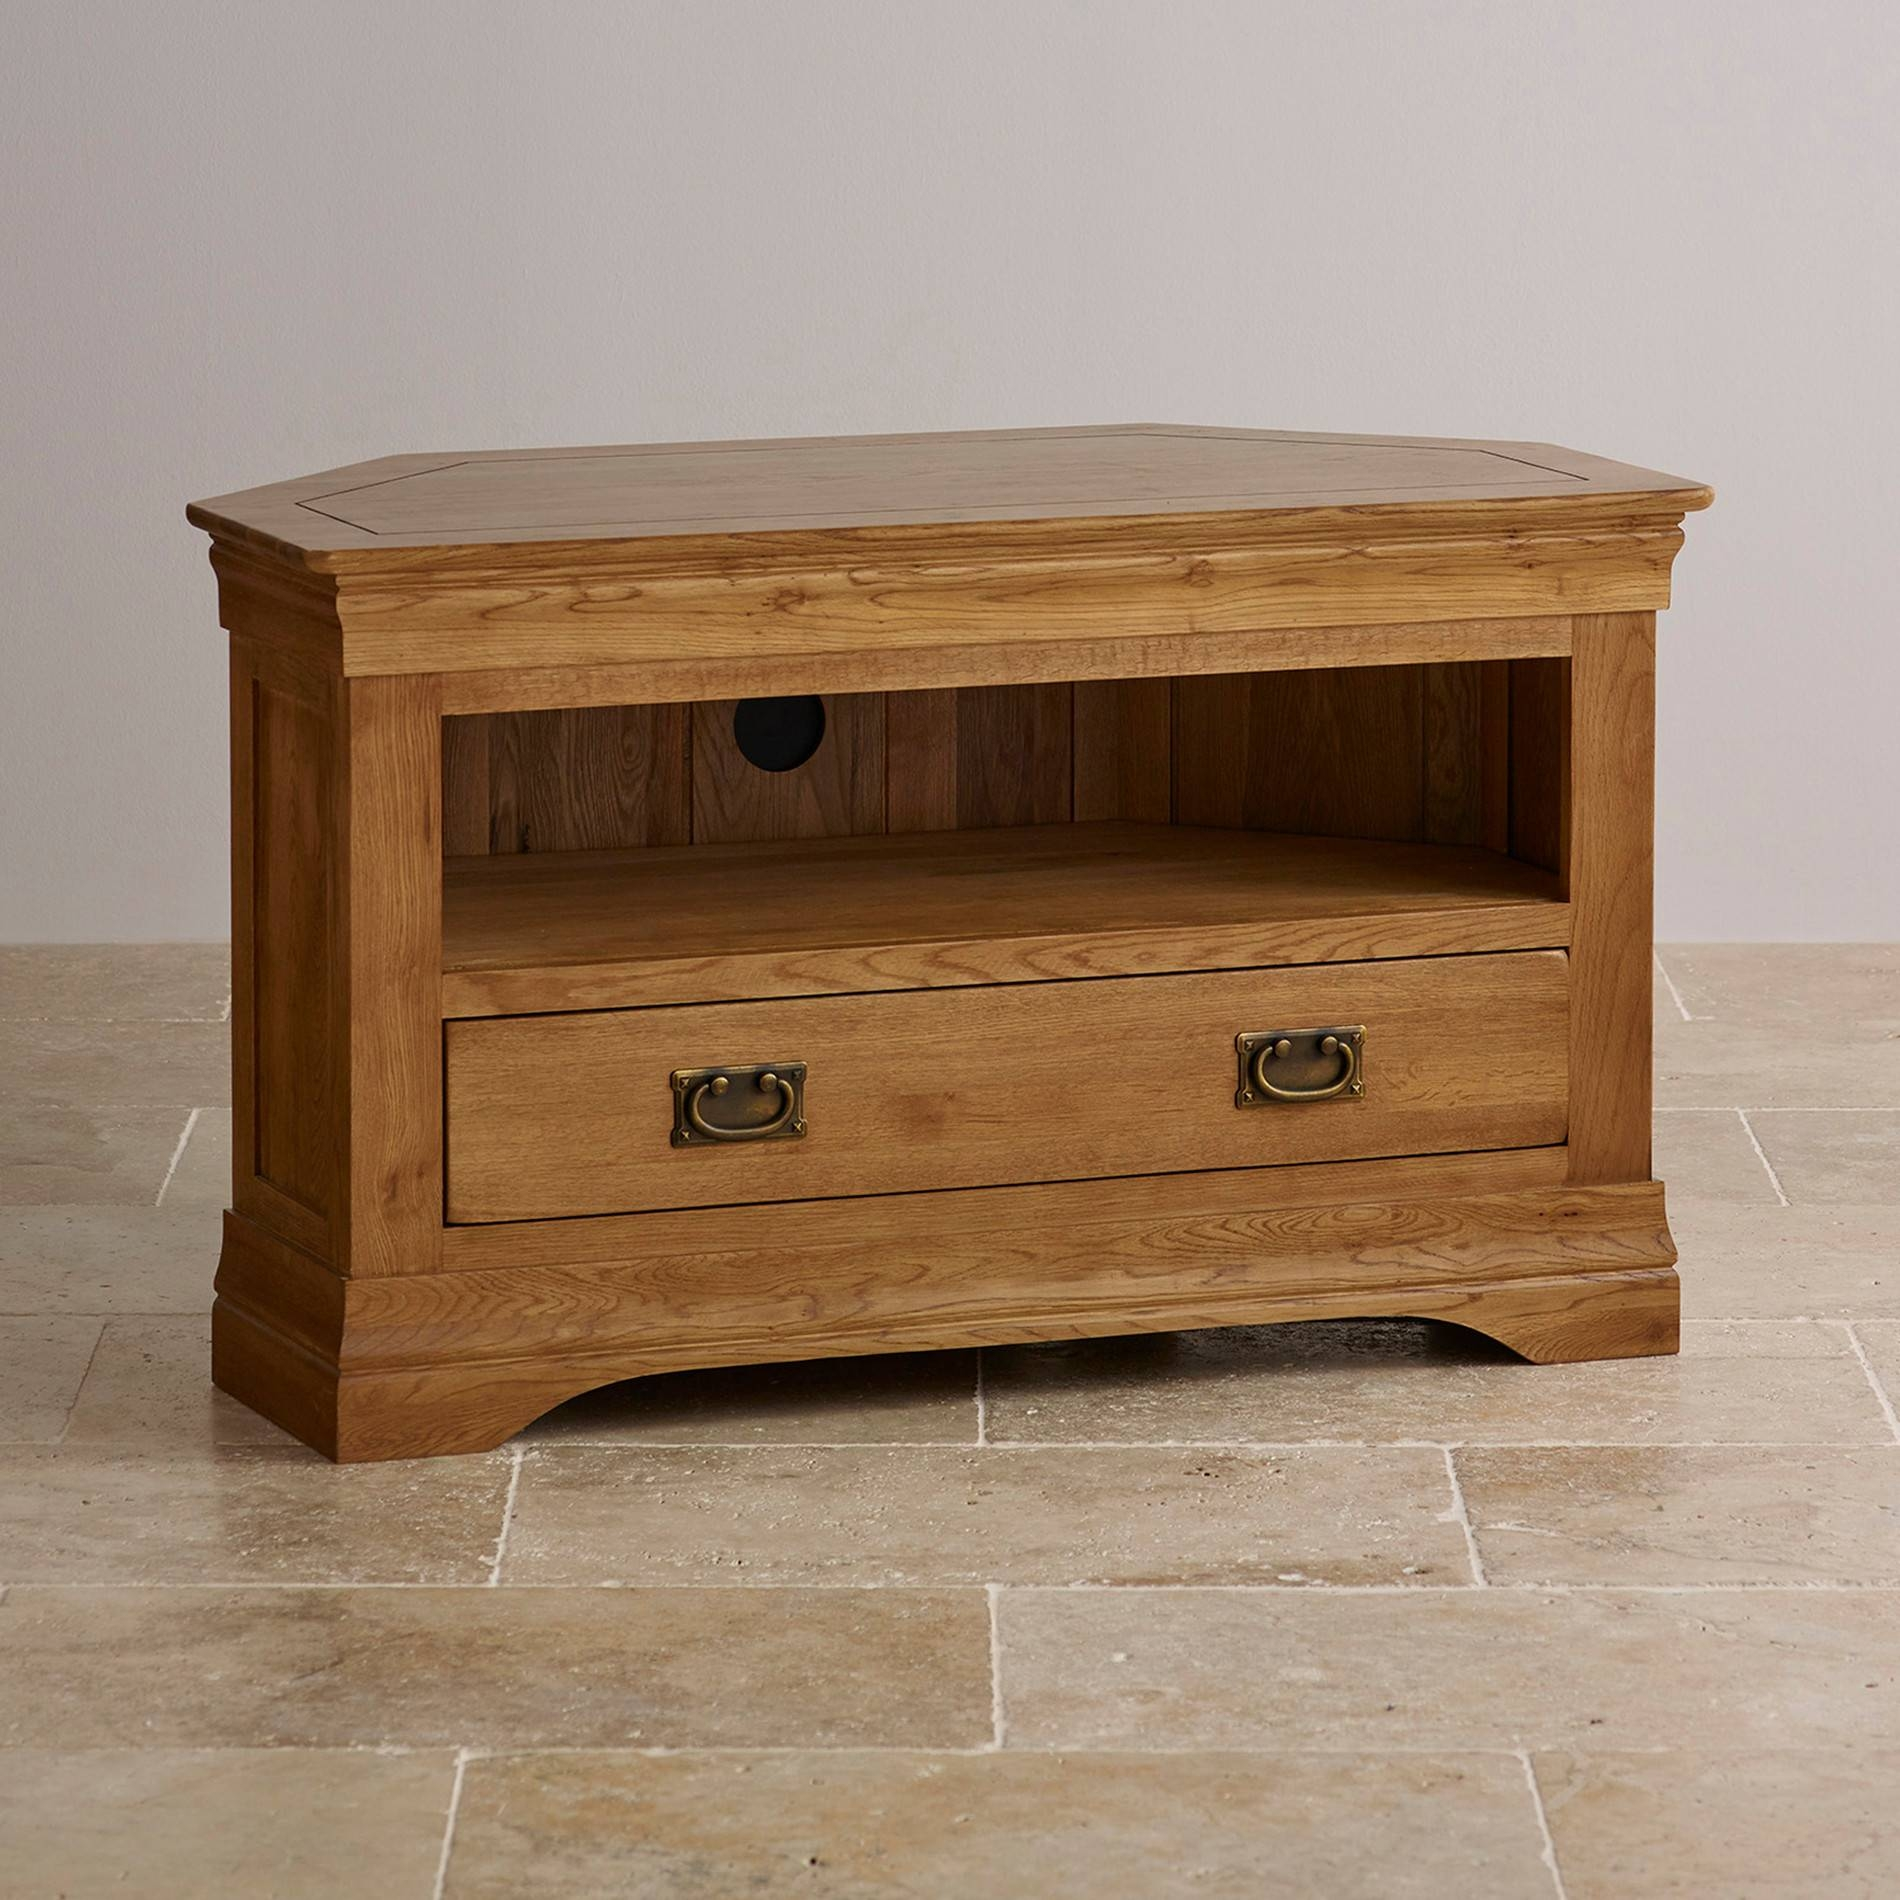 French Farmhouse Corner Tv Unit | Solid Oak | Oak Furniture Land with Rustic Oak Tv Stands (Image 2 of 15)